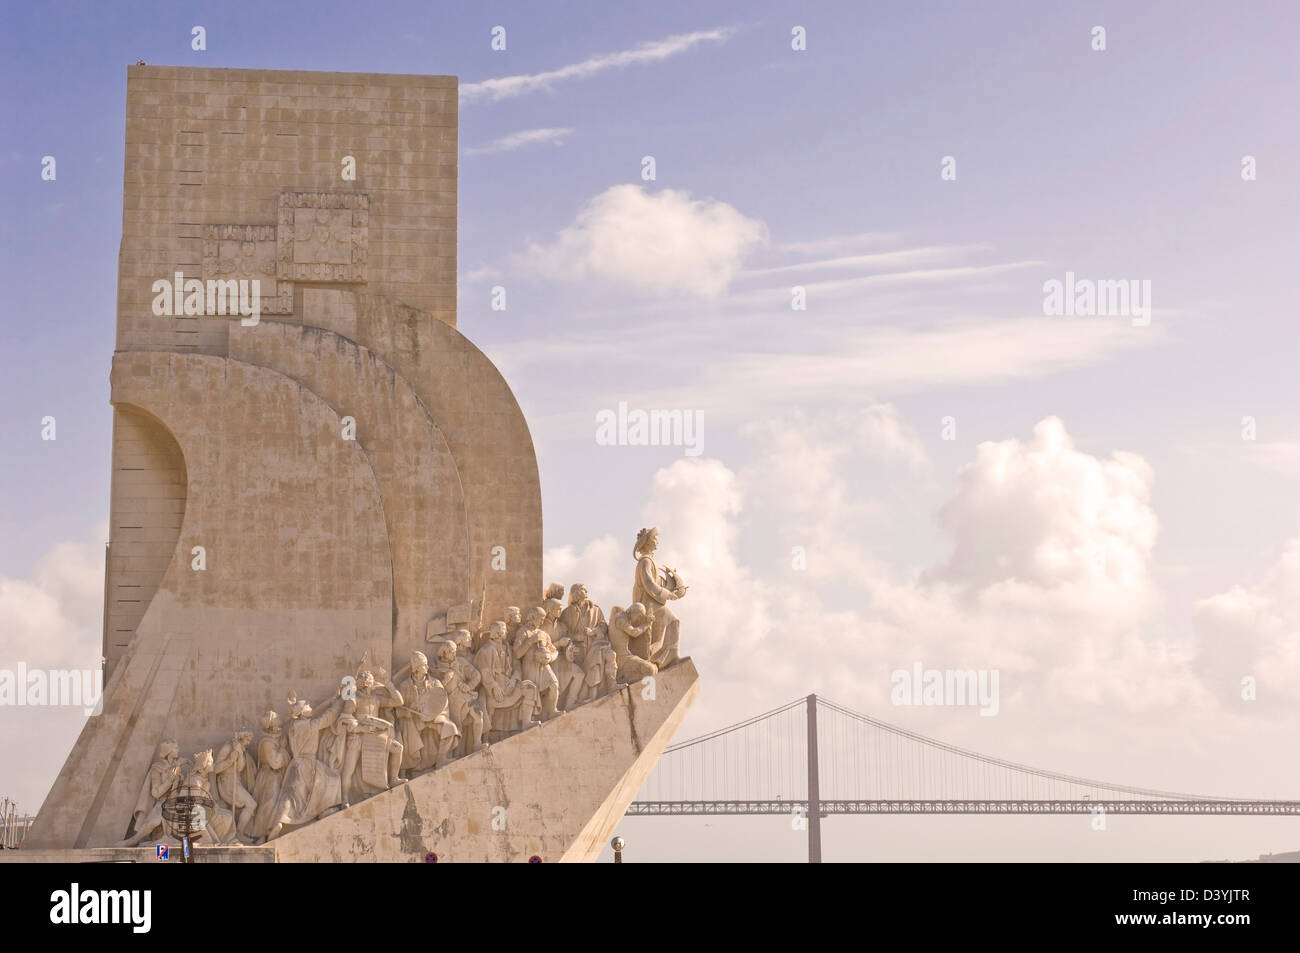 The western face of the Monument to the Discoveries, on the waterfront of the River Tagus, Belem in Lisbon, Portugal - Stock Image